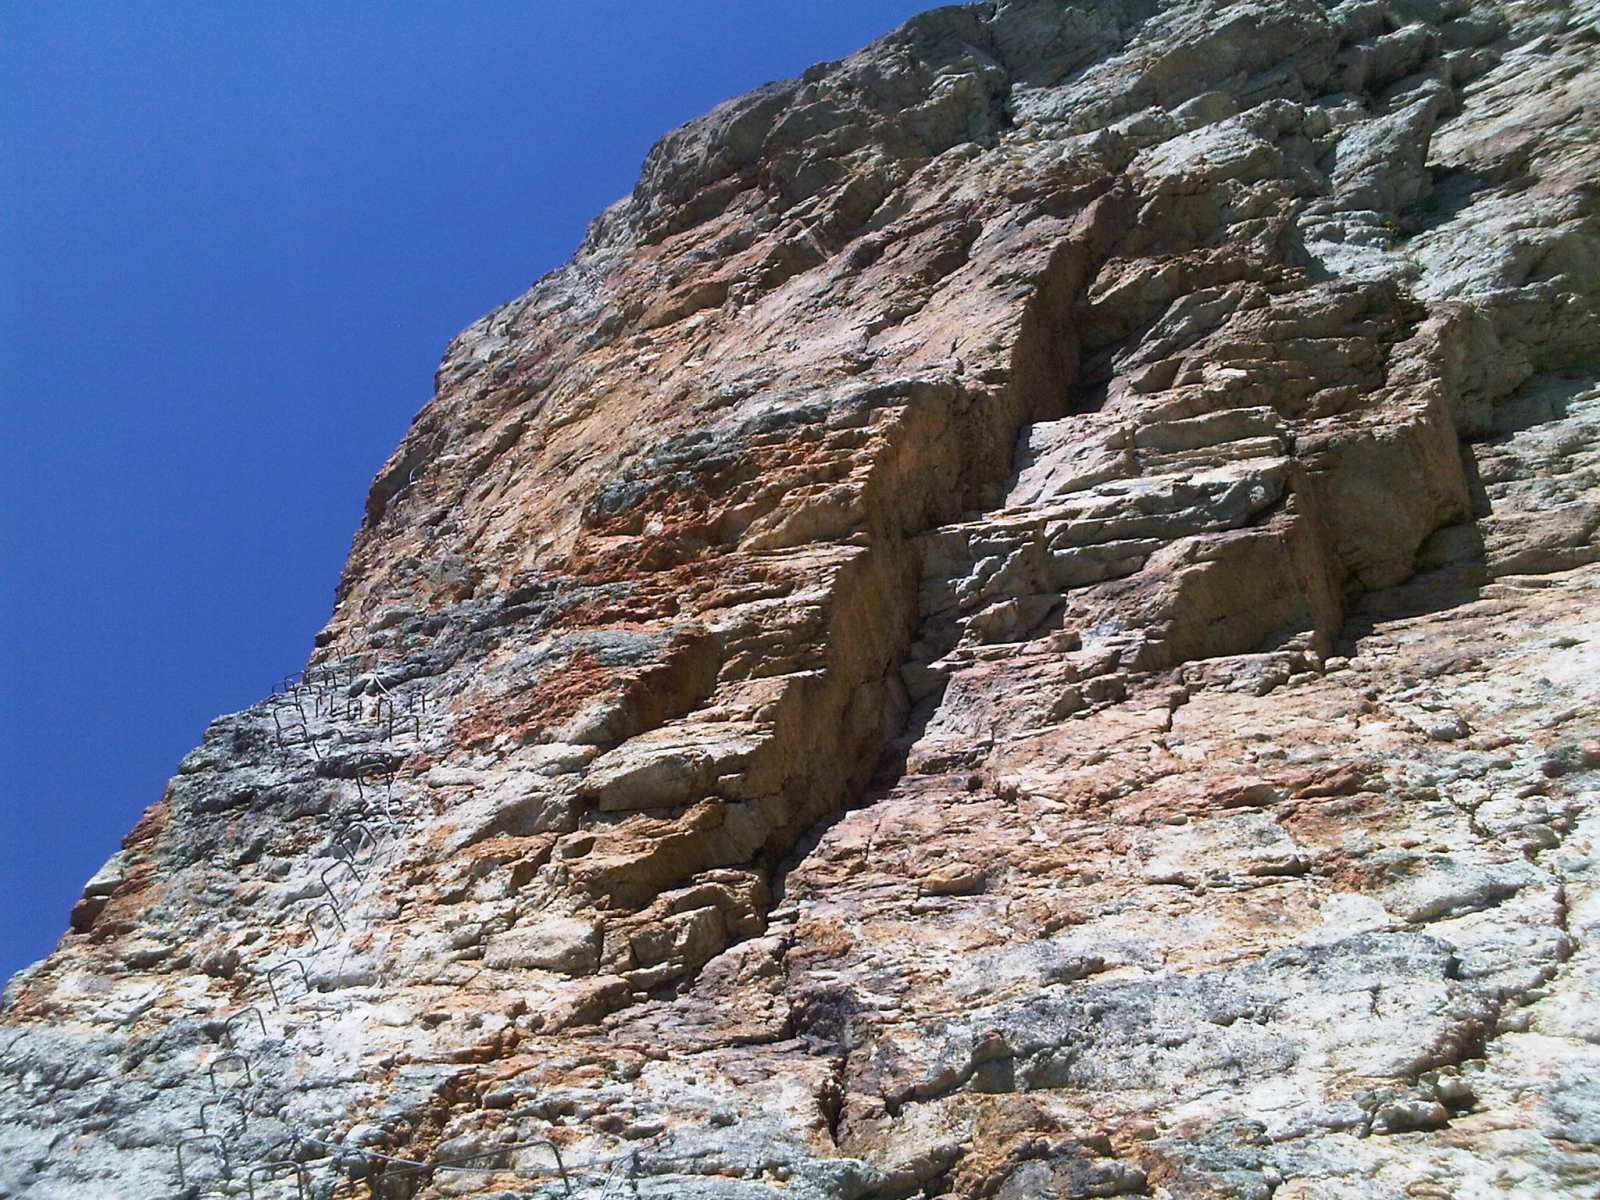 Rocca Senghi Via Ferrata 28th June 2015 - Photo 2 -